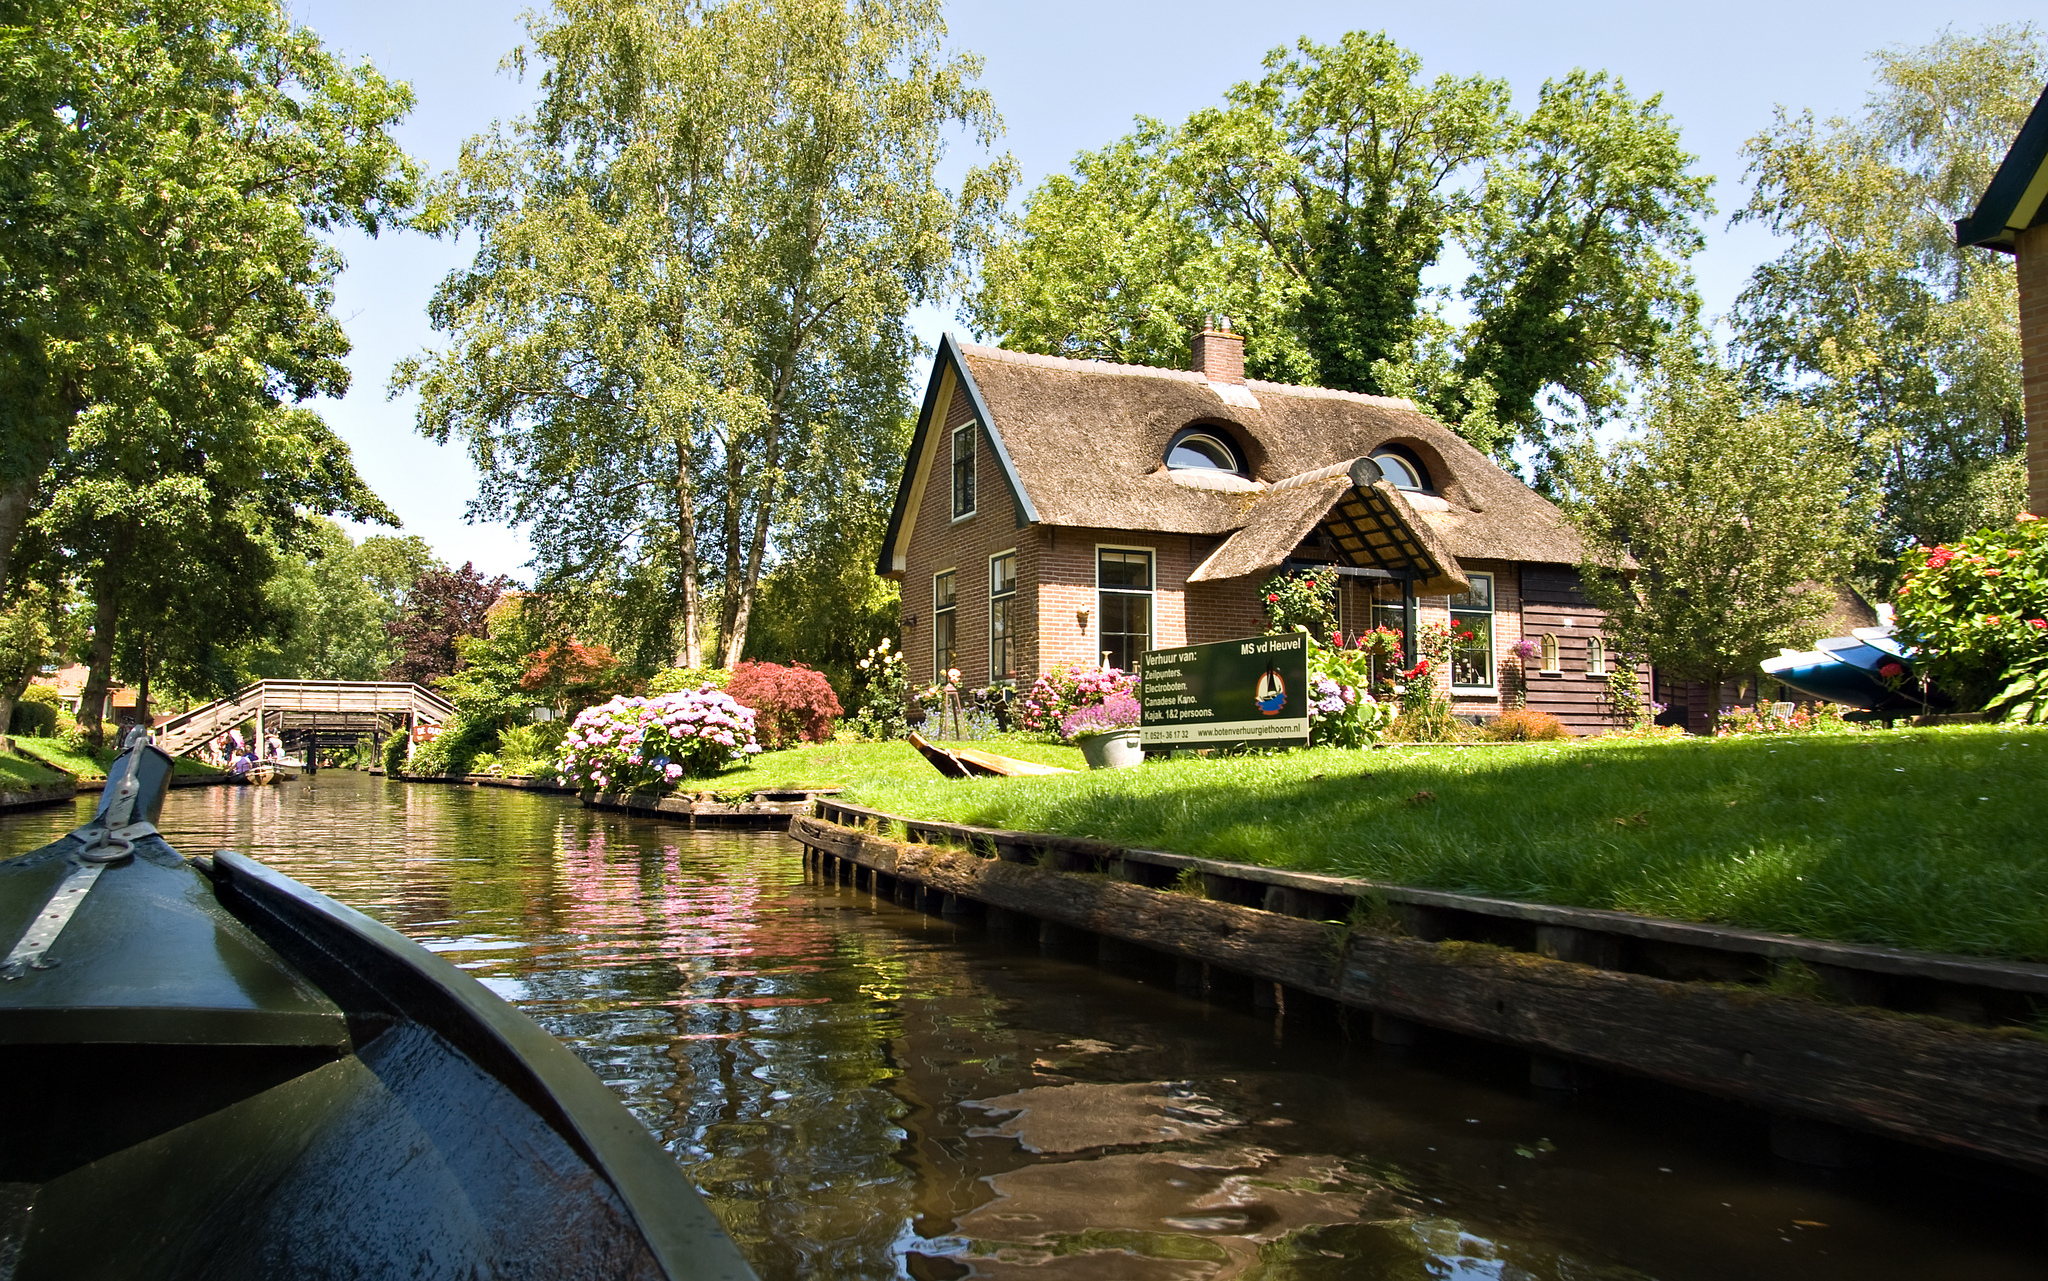 hollands venice and hanseatic towns holland tripsite